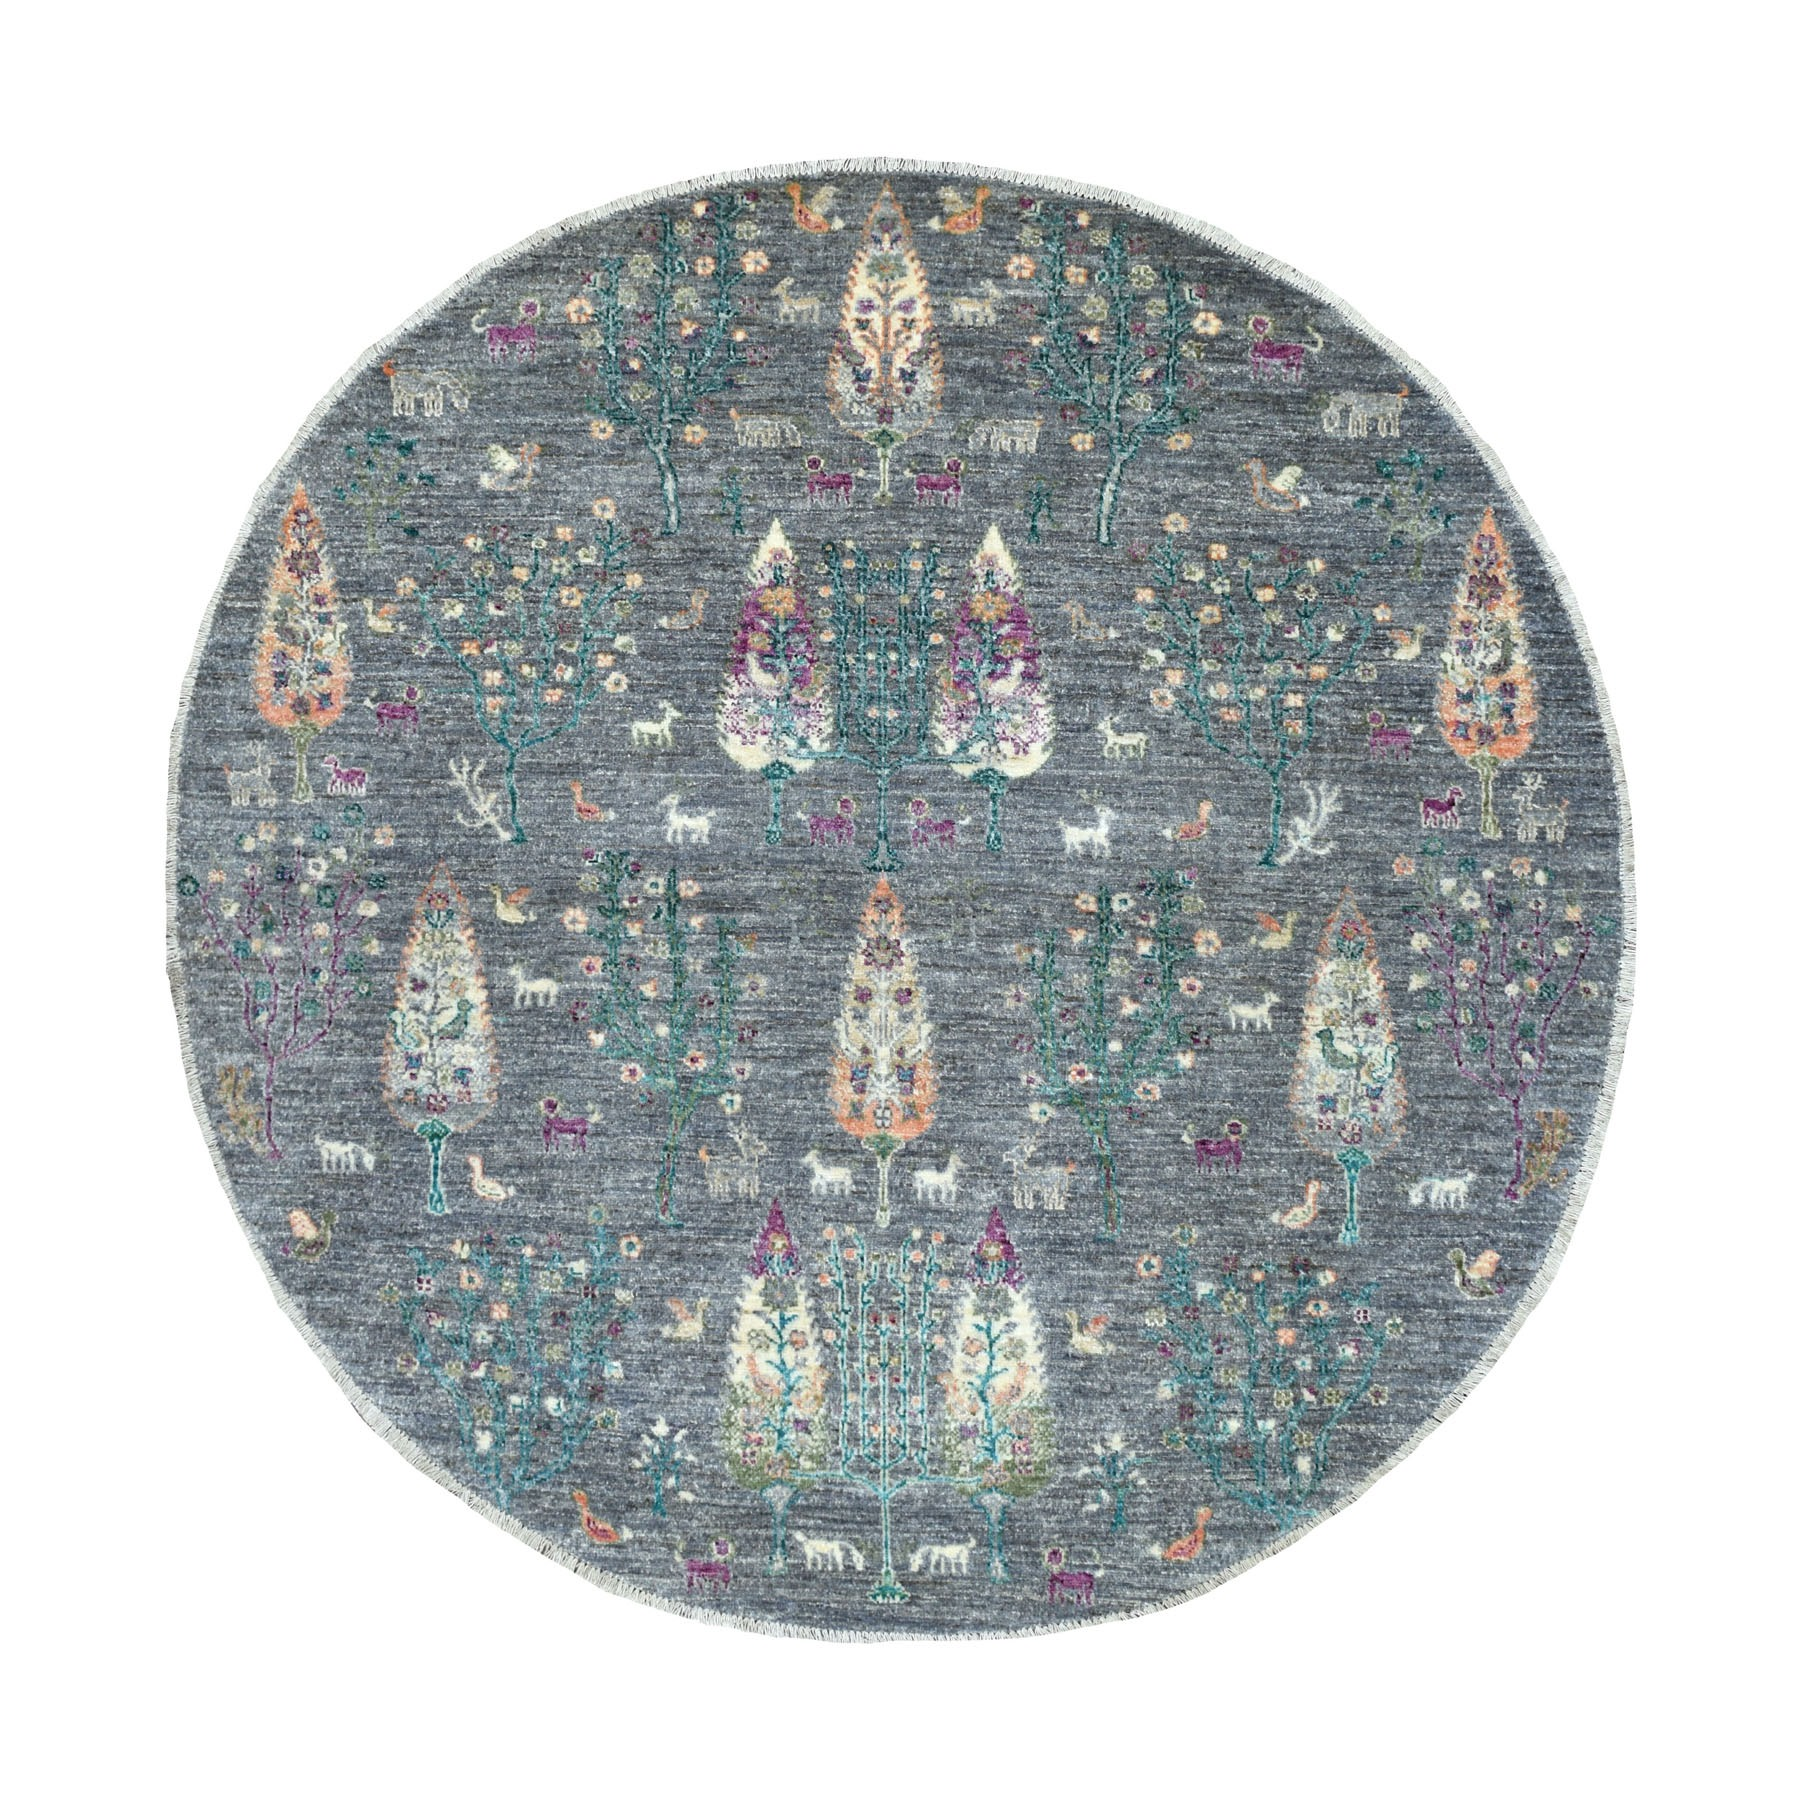 6'x6' Round Folk Art Willow And Cypress Tree Design Hand Knotted Oriental Rug